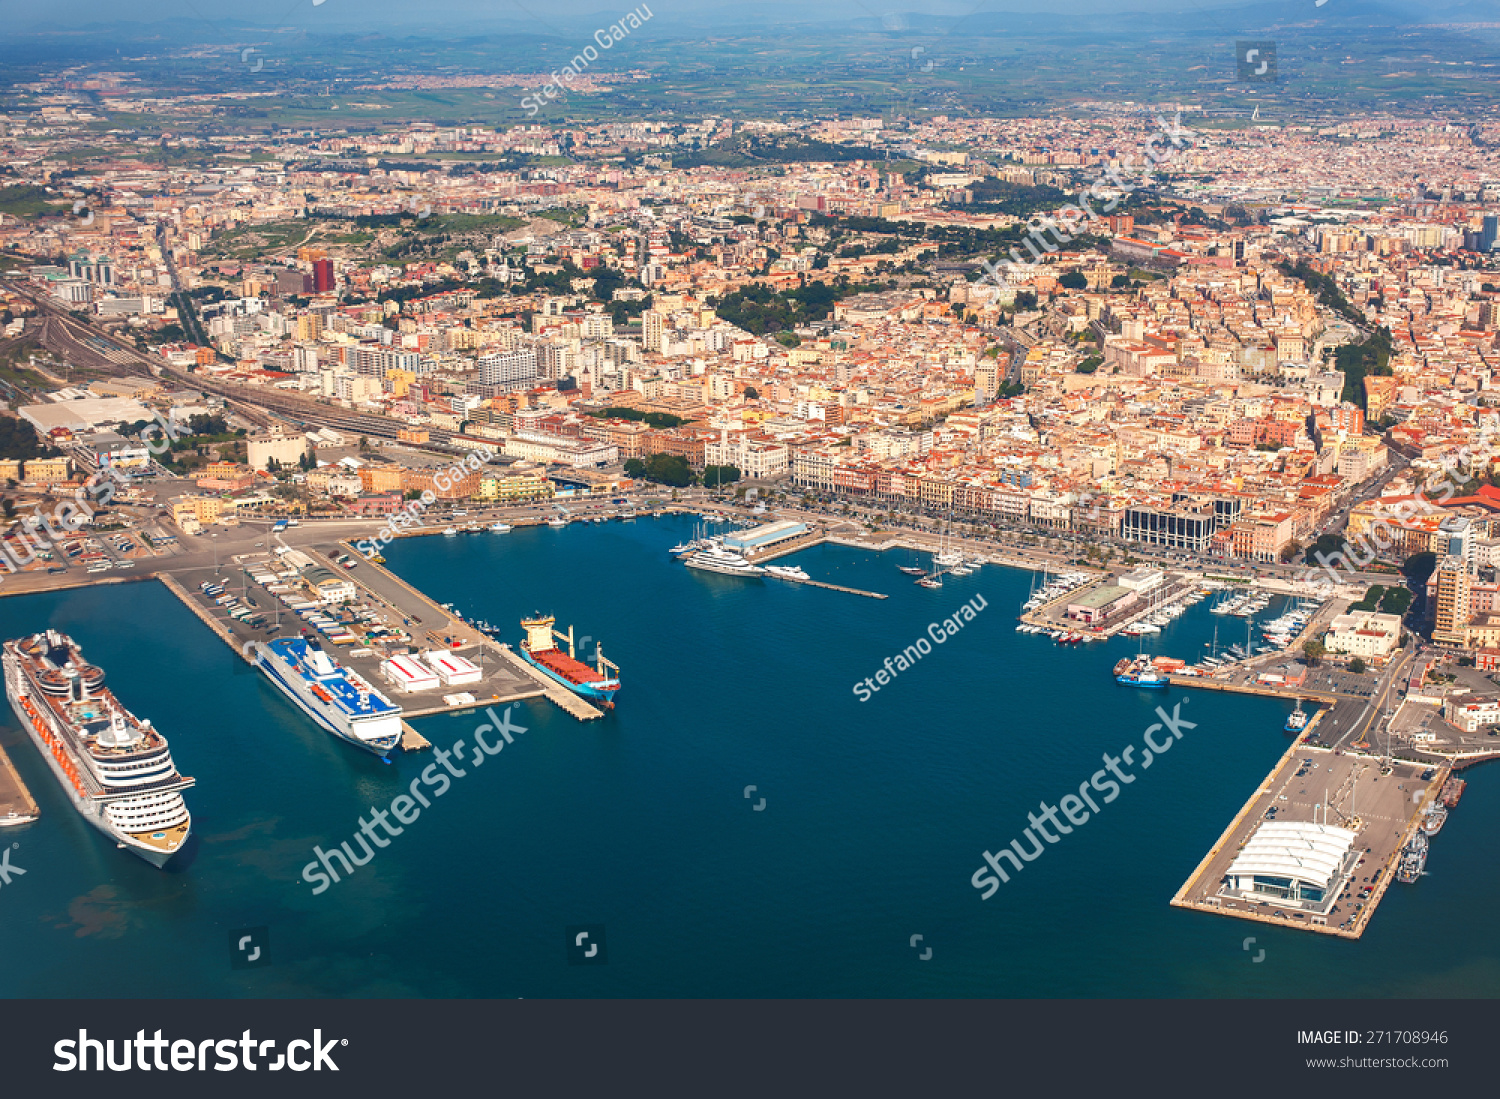 Aerial View Of The Port Of Cagliari And The City Stock ...